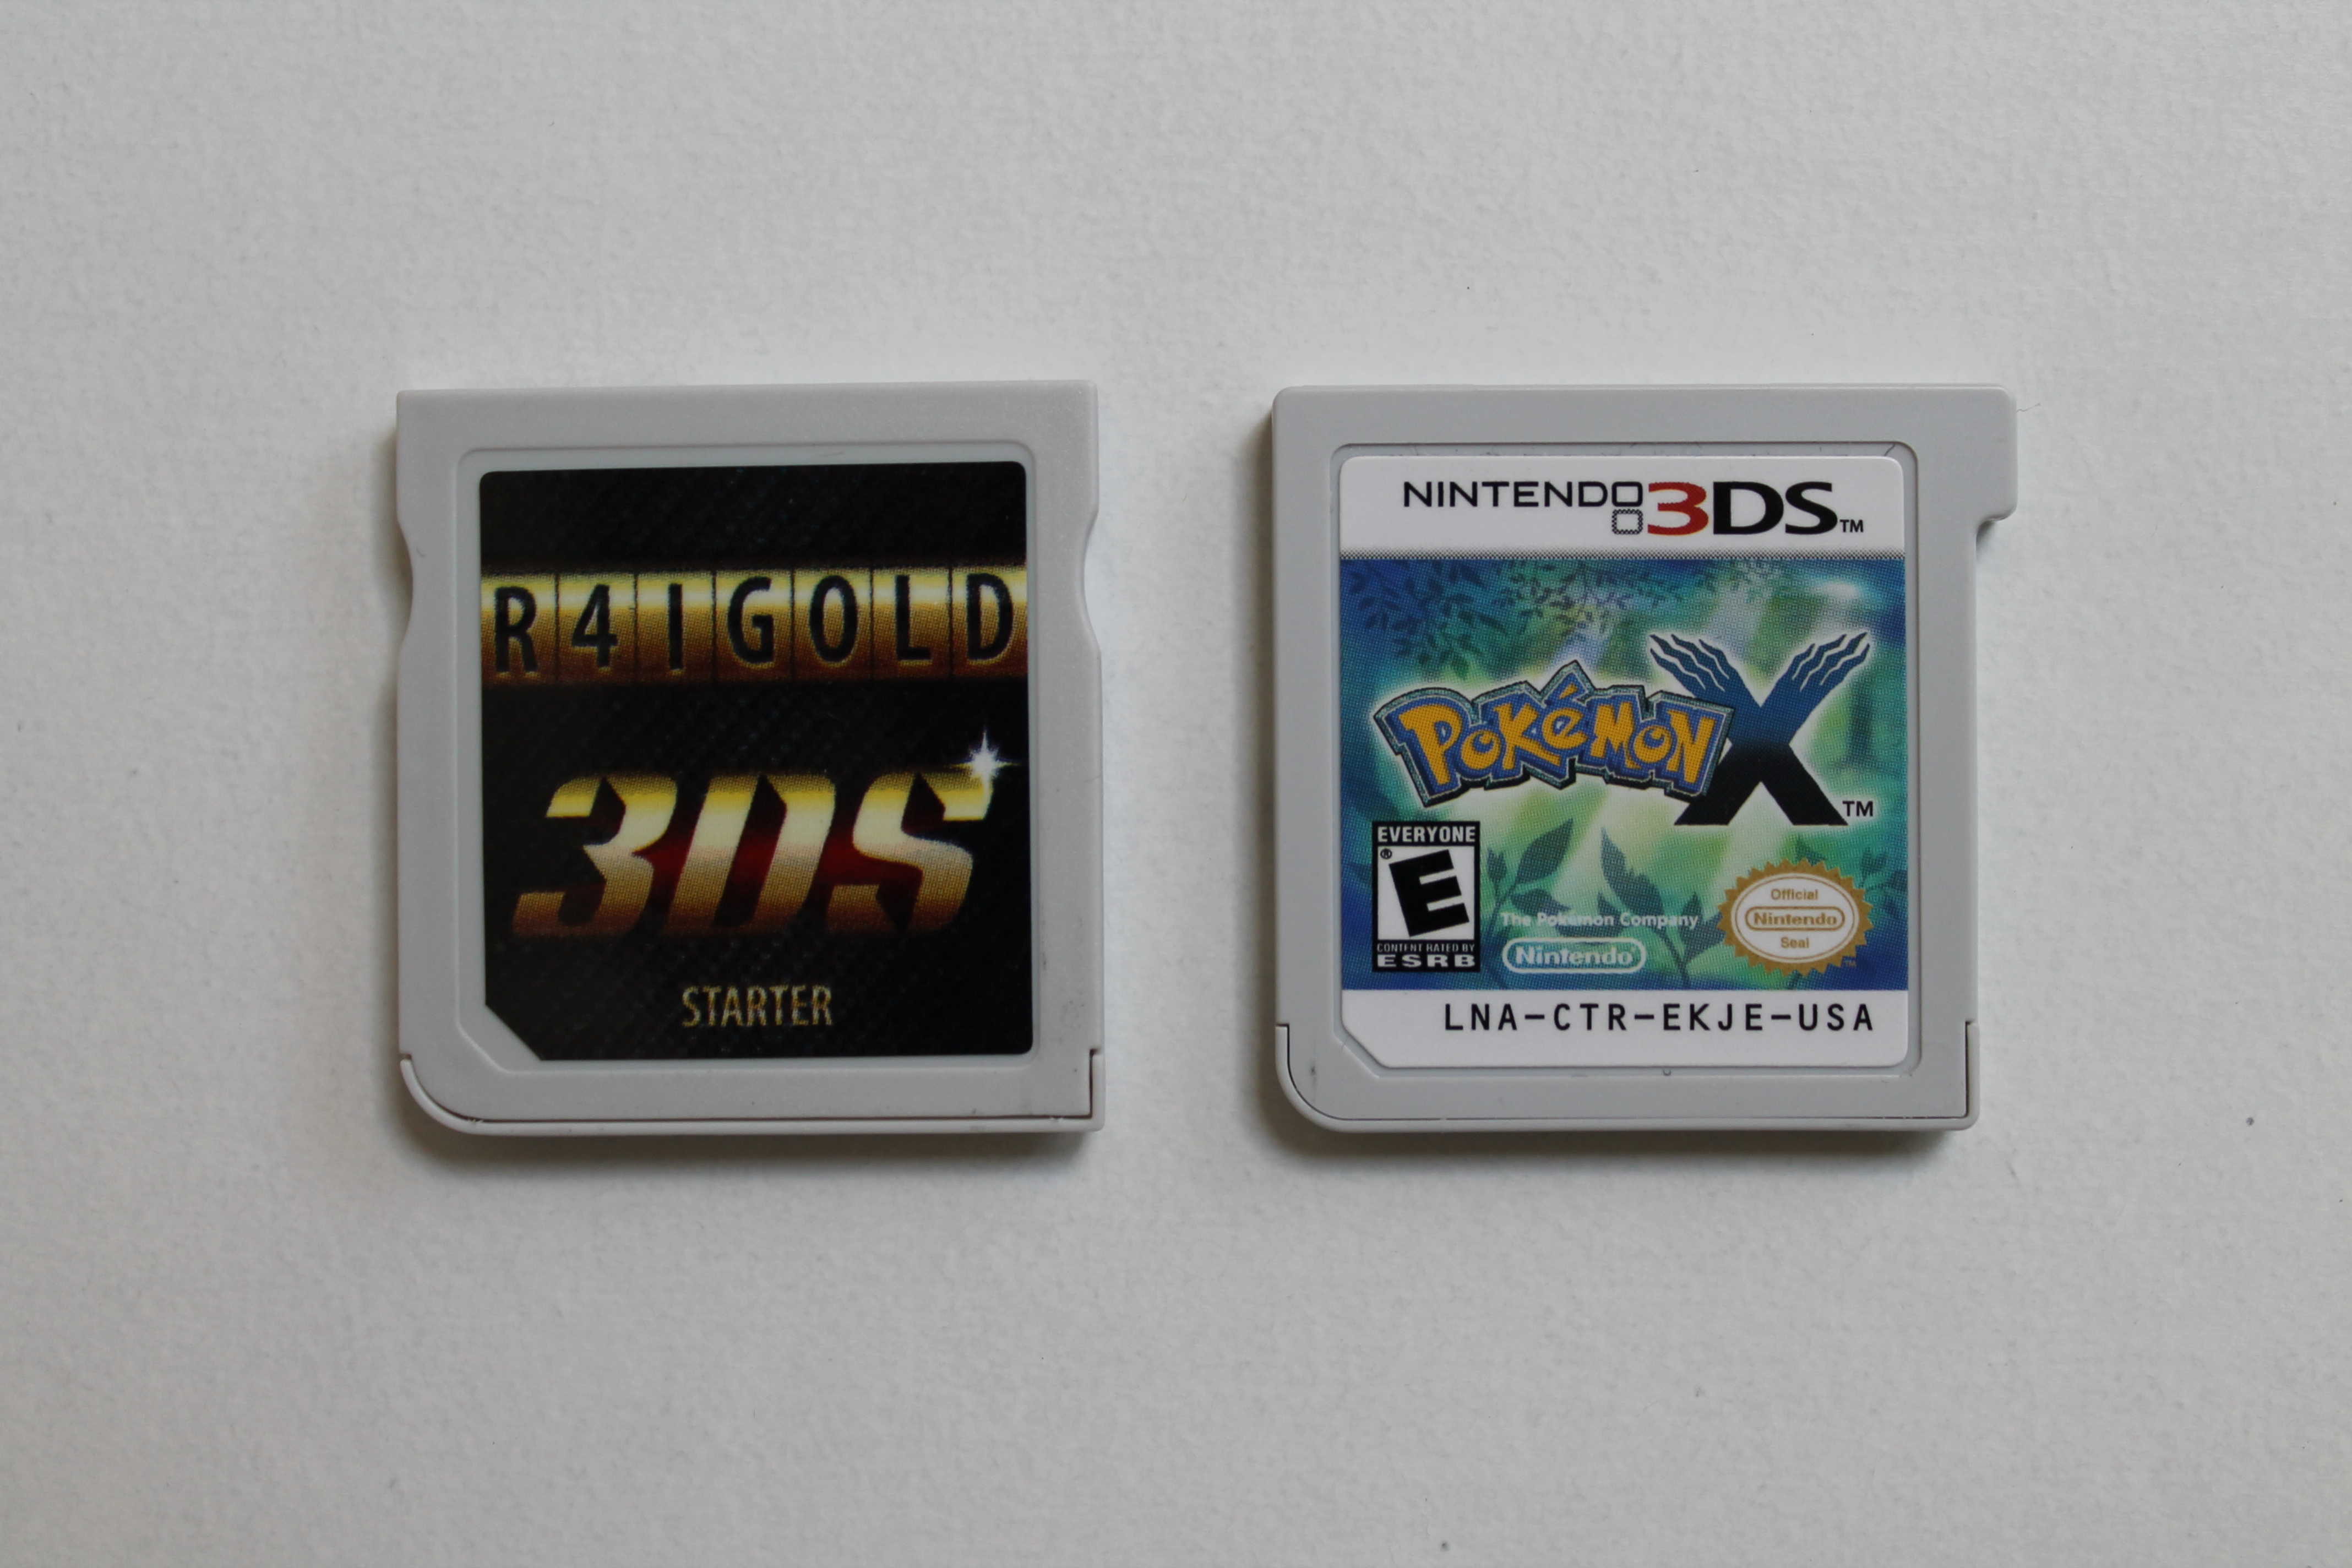 R4i Gold 3DS Deluxe Review